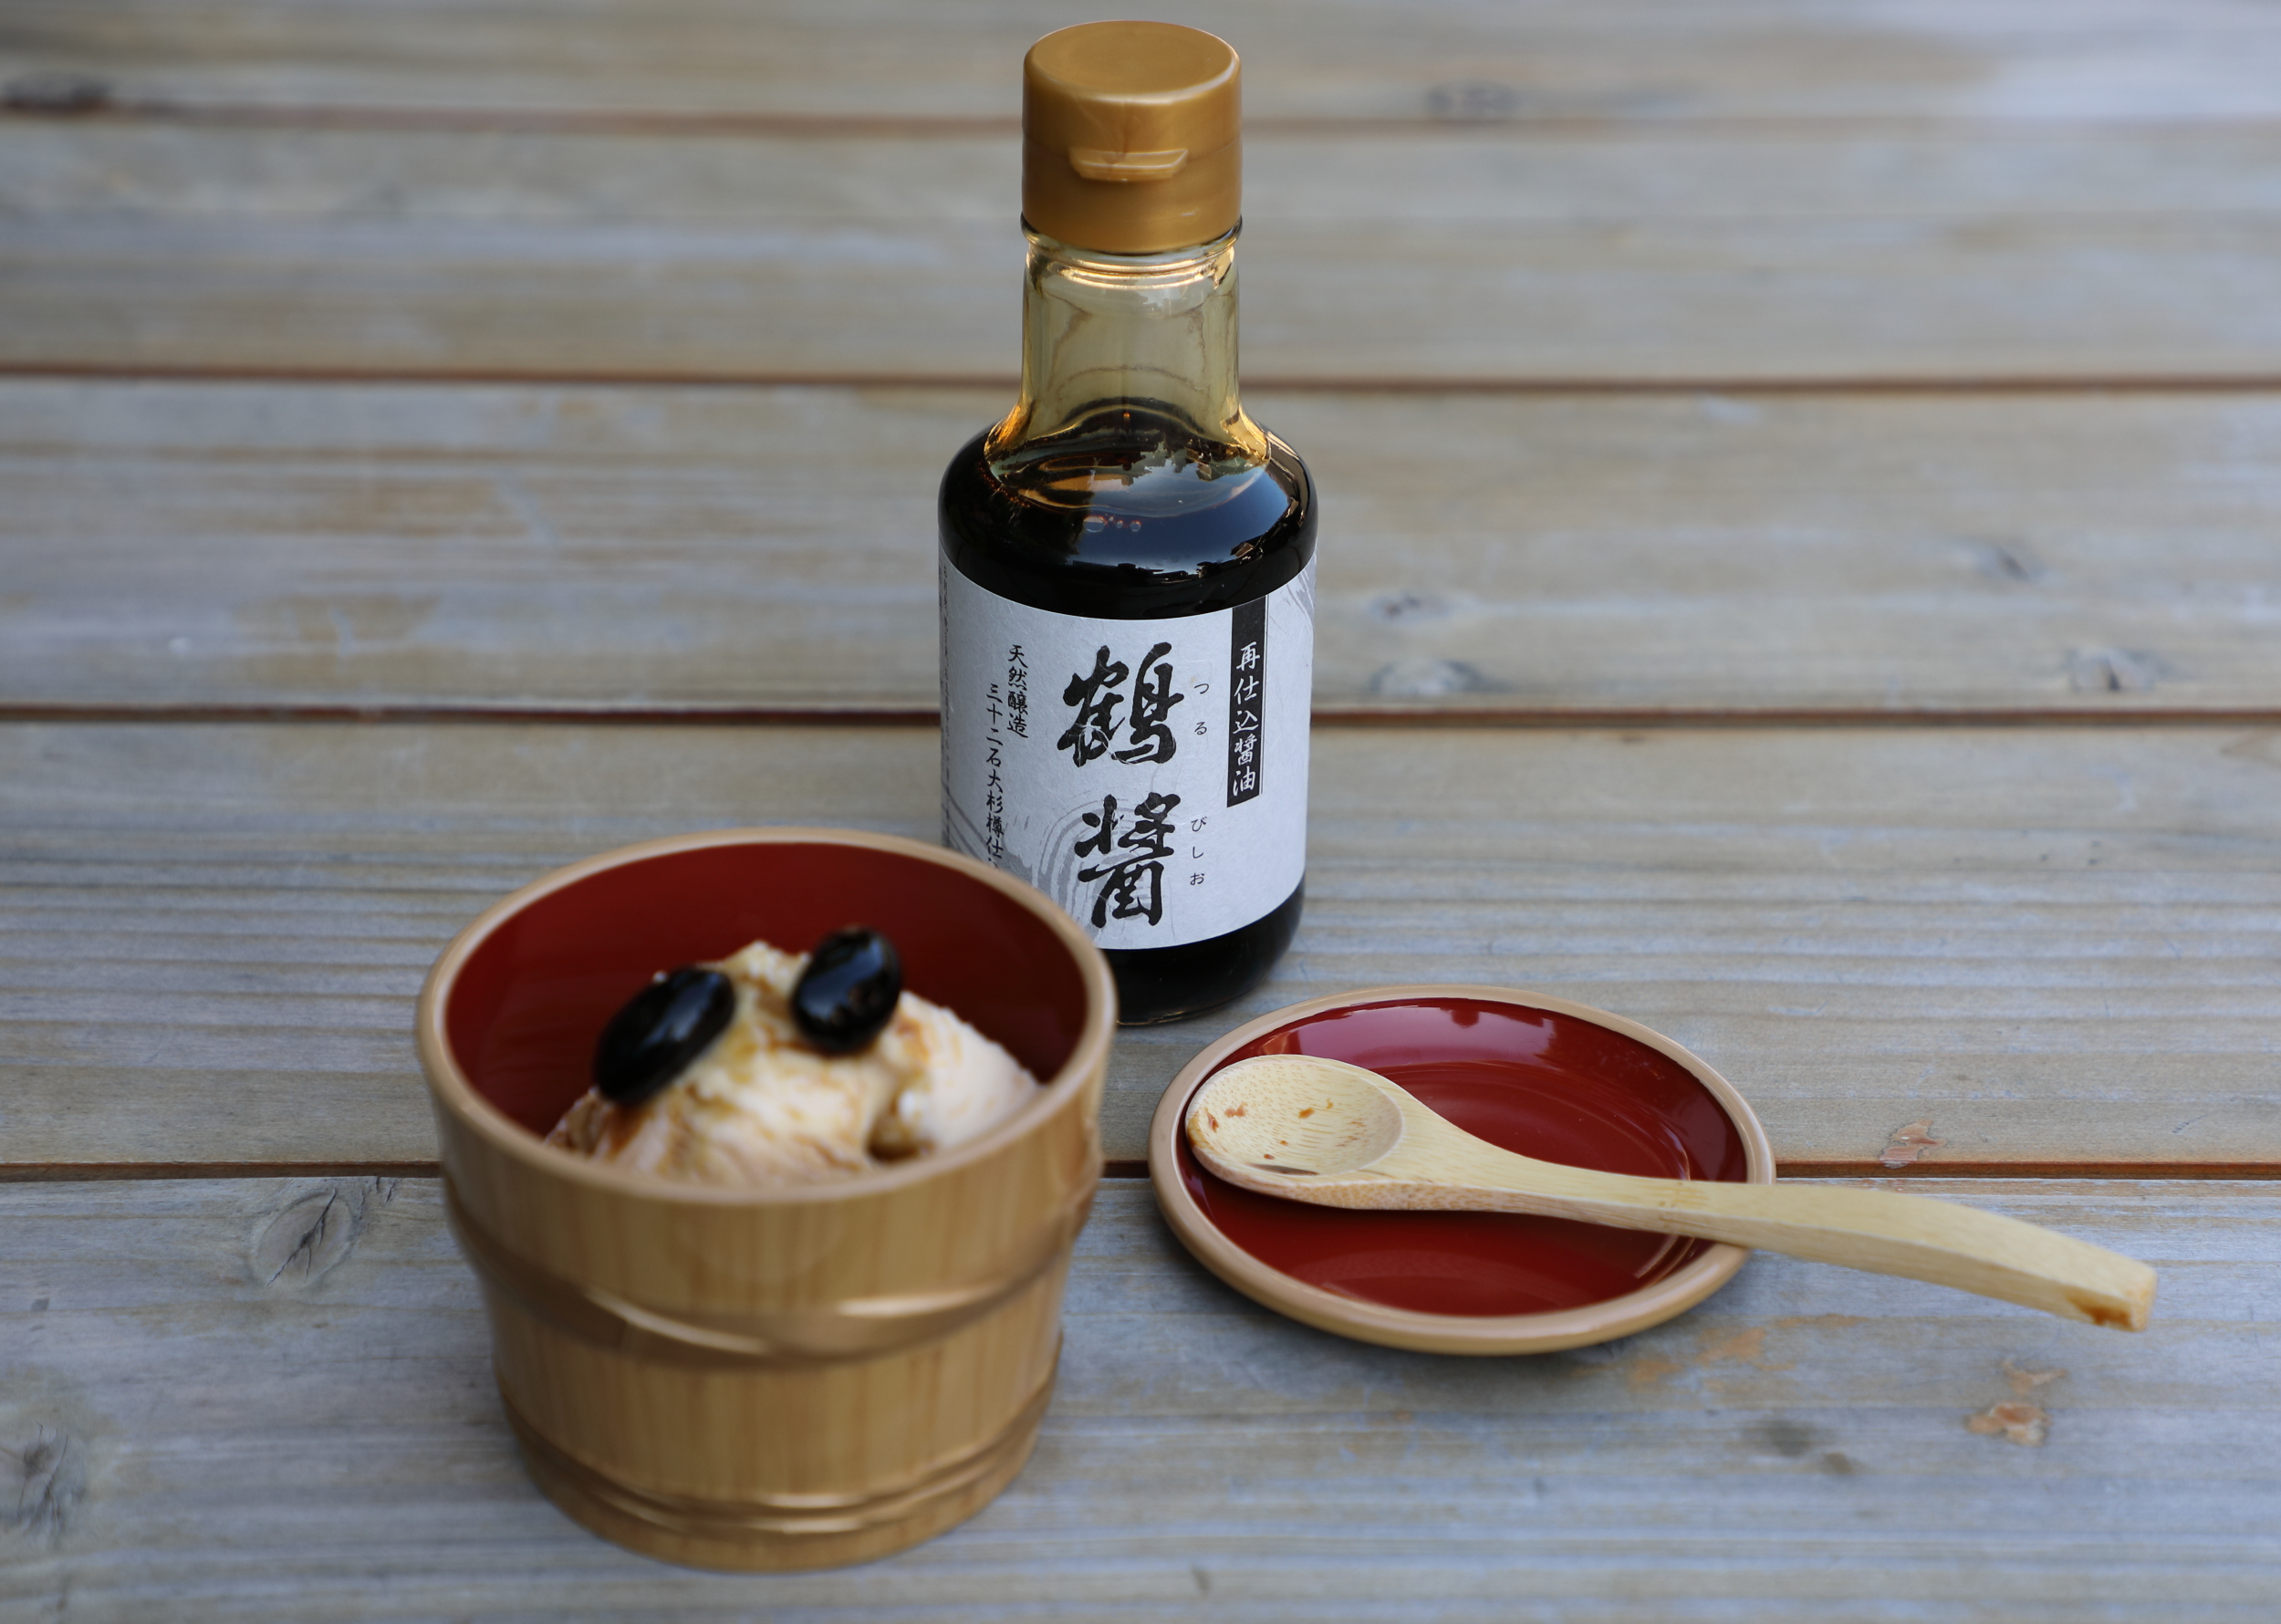 """Custard ice cream topped with Yamaroku's """"Tsuru-bishio"""" four year-aged soy sauce and large, sweet black soy beans ."""